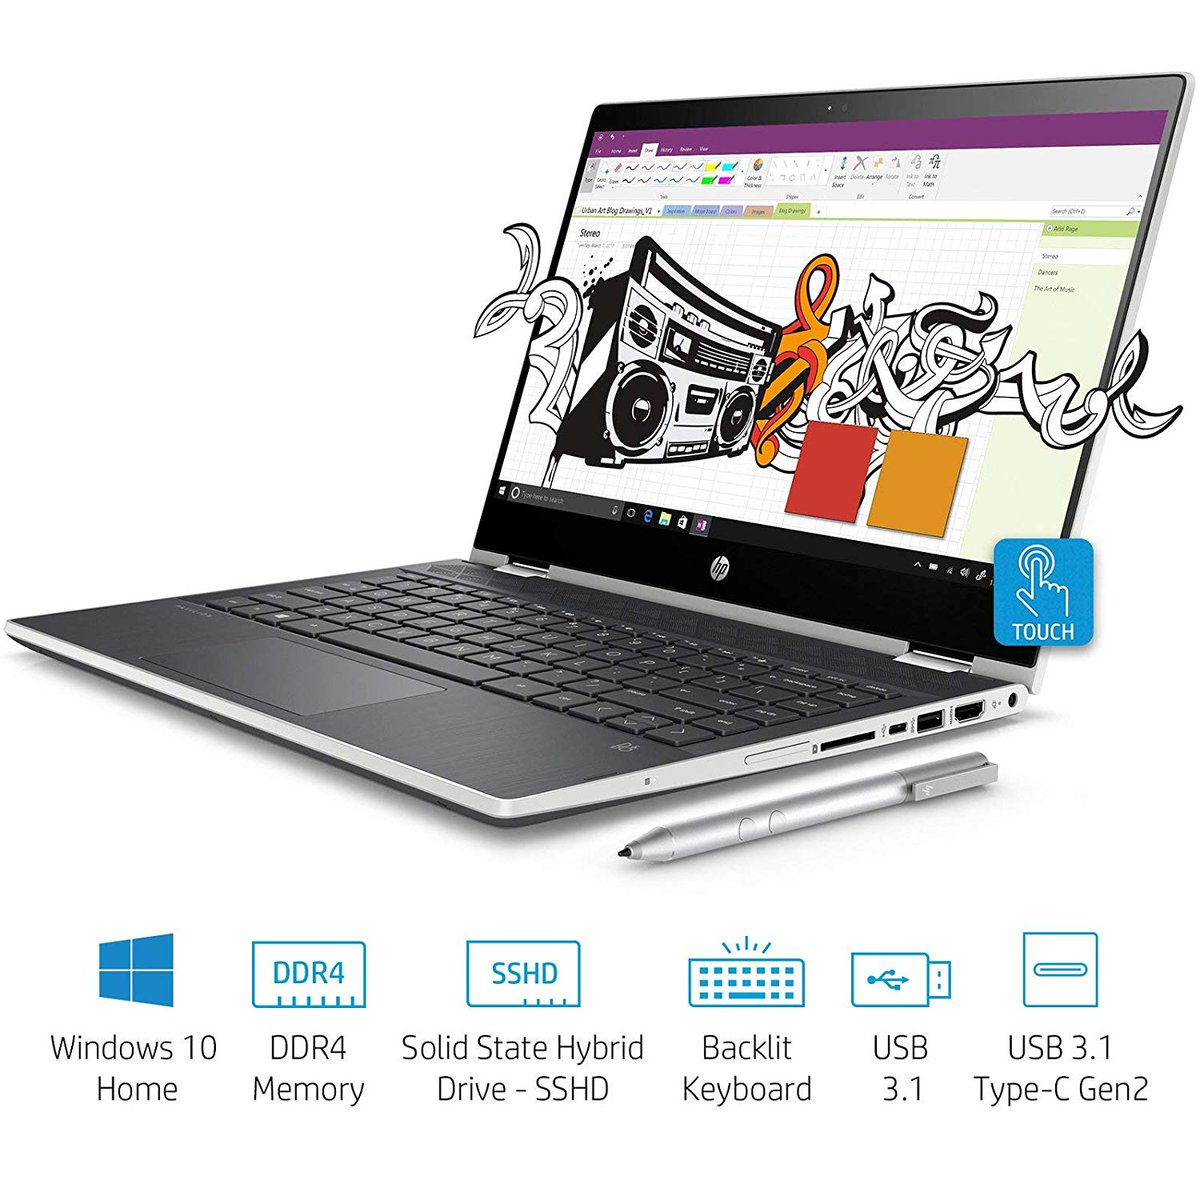 Hp Laptop I3 Hashtag On Twitter Lenovo V110 15isk With Intel Core 6100u 8th Gen 14 Inch Touchscreen 2 In 1 Fhd Thin And Light 4gb 1tb 8gb Sshd Windows 10 Home Msoffice Natural Silver 159 Kg